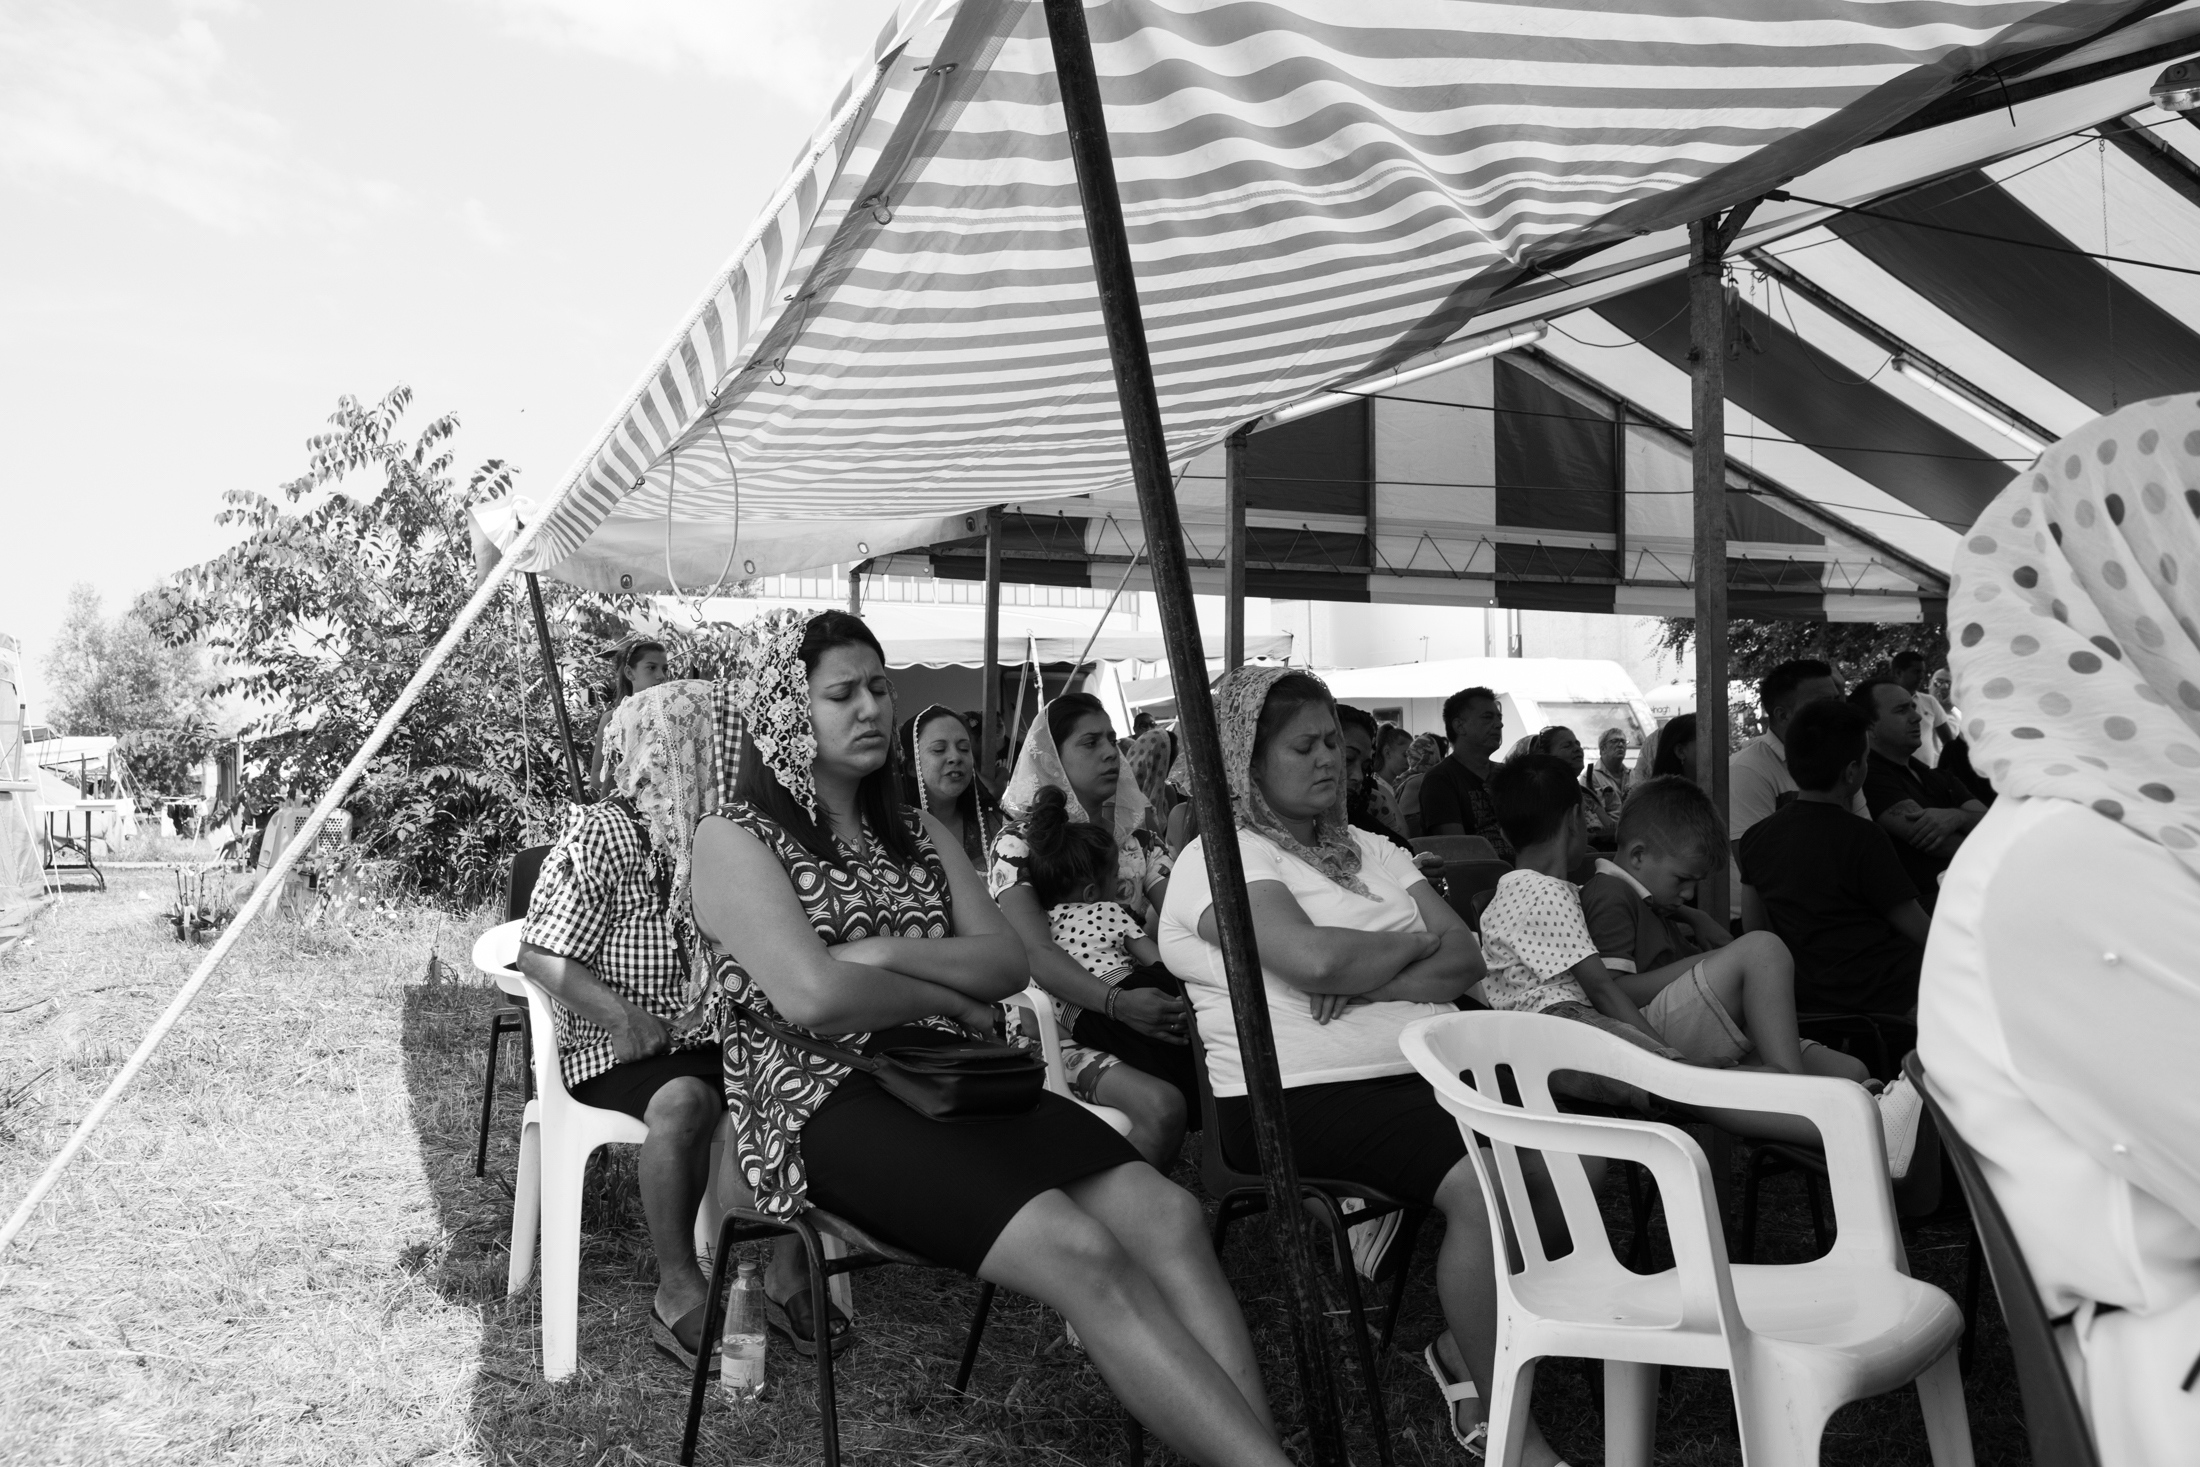 June 2018, Nomad camp near to Castelnuovo Rangone, Emilia-Romagna, Italy. The faithful of the Sinti community pray during the evangelical worship. The evangelical religion is becoming more and more established within the community, thanks to the possibility of redeeming oneself from sins and of embarking on a new way of life. In fact, these cults are reaching ever greater numbers of believers through adult group baptisms and children.